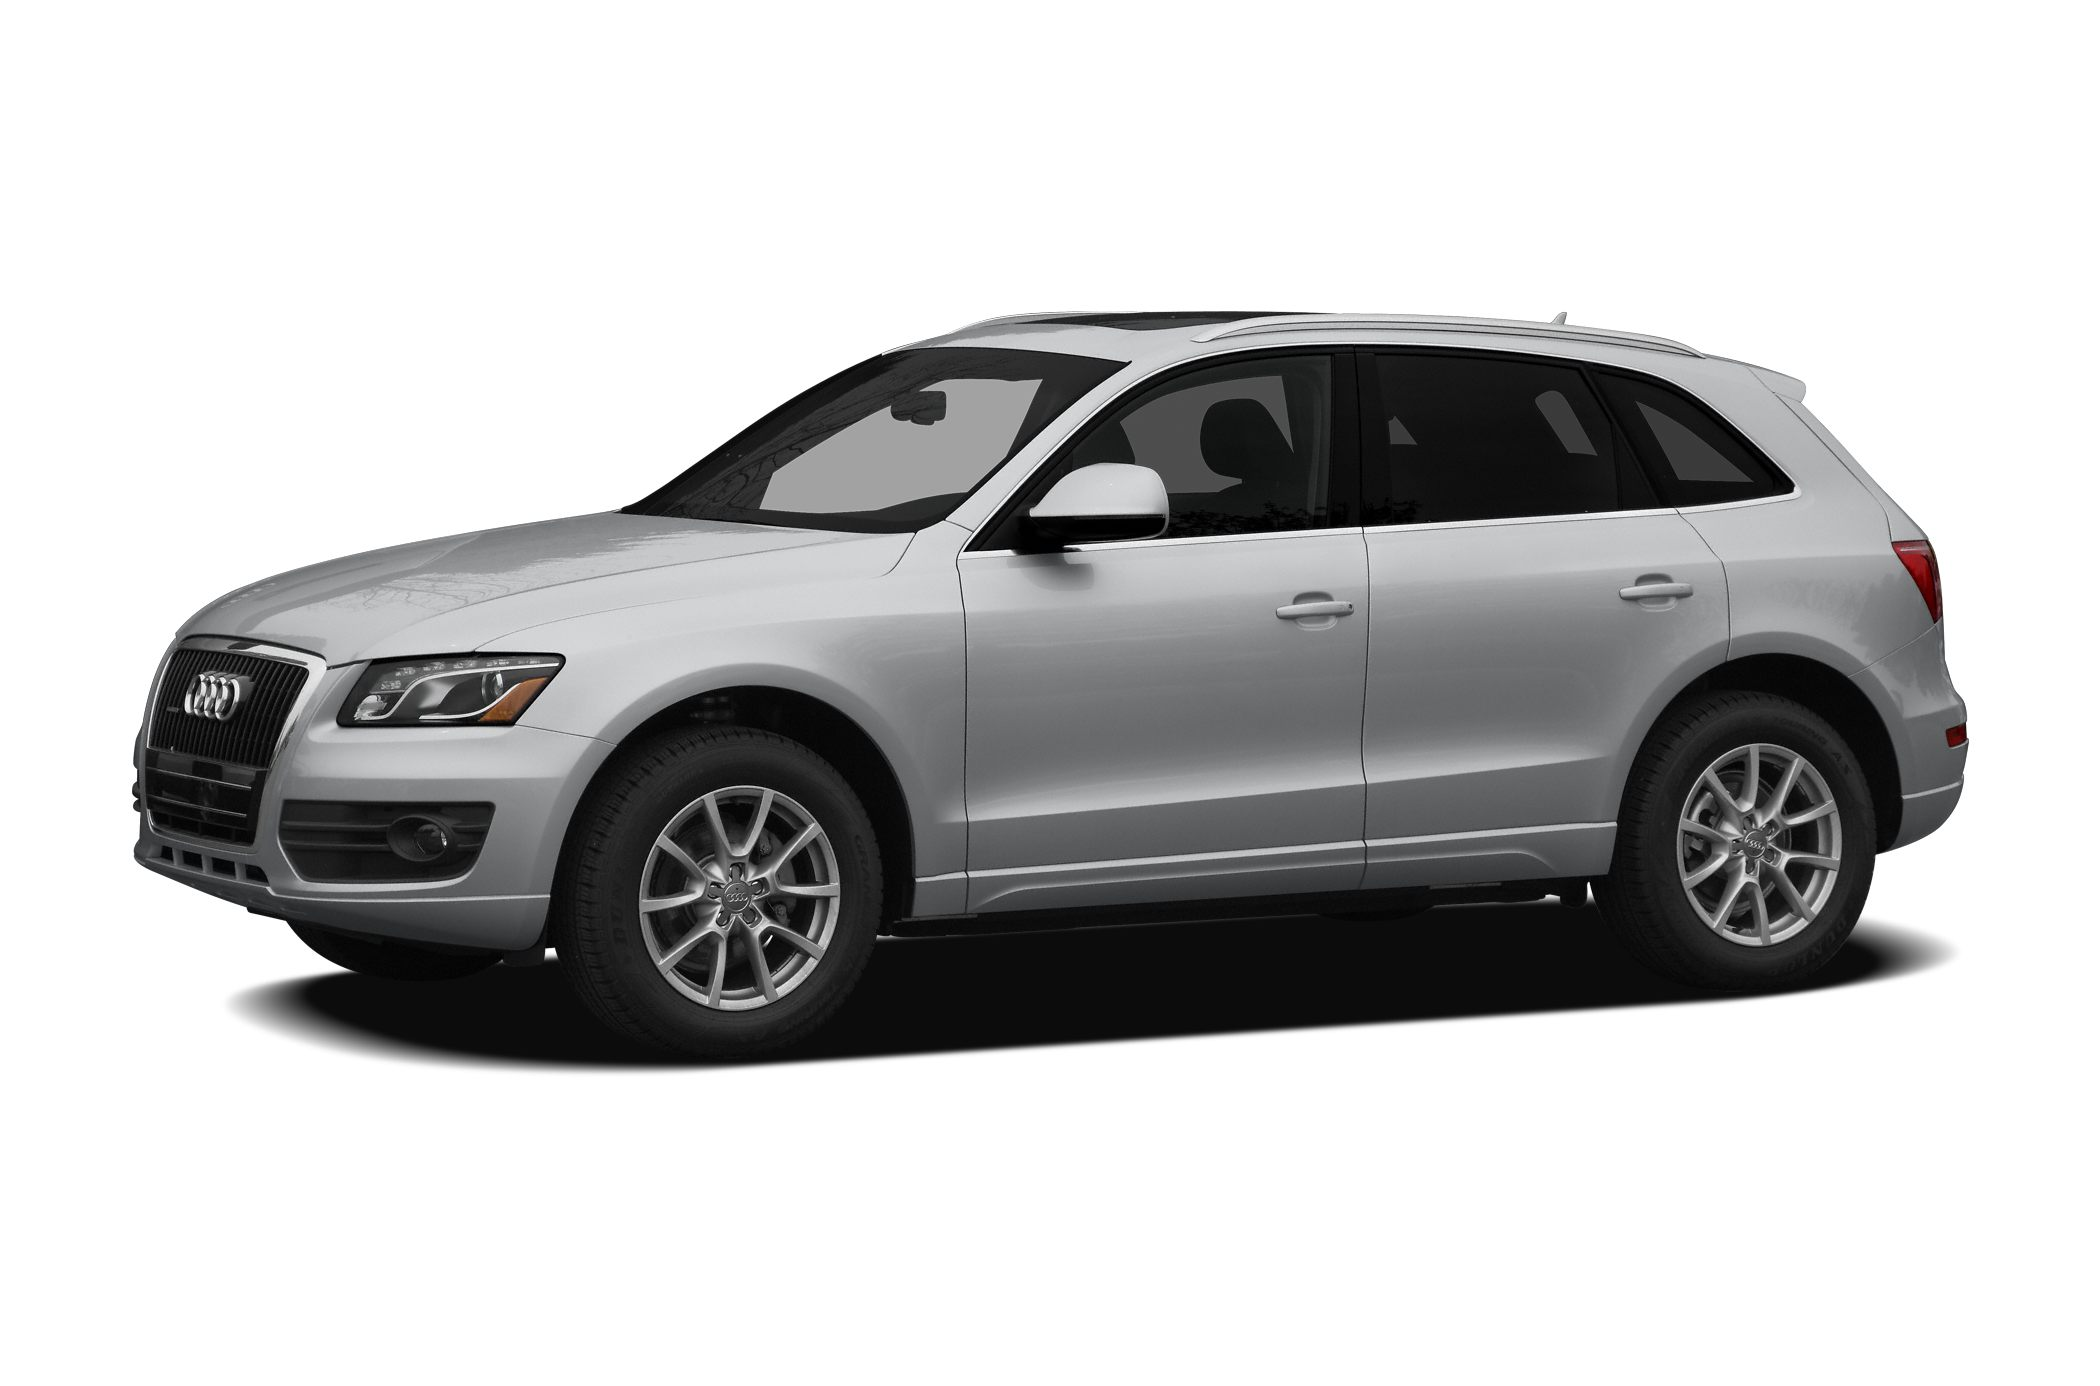 2009 Audi Q5 3.2 Premium SUV for sale in Greenville for $21,995 with 70,705 miles